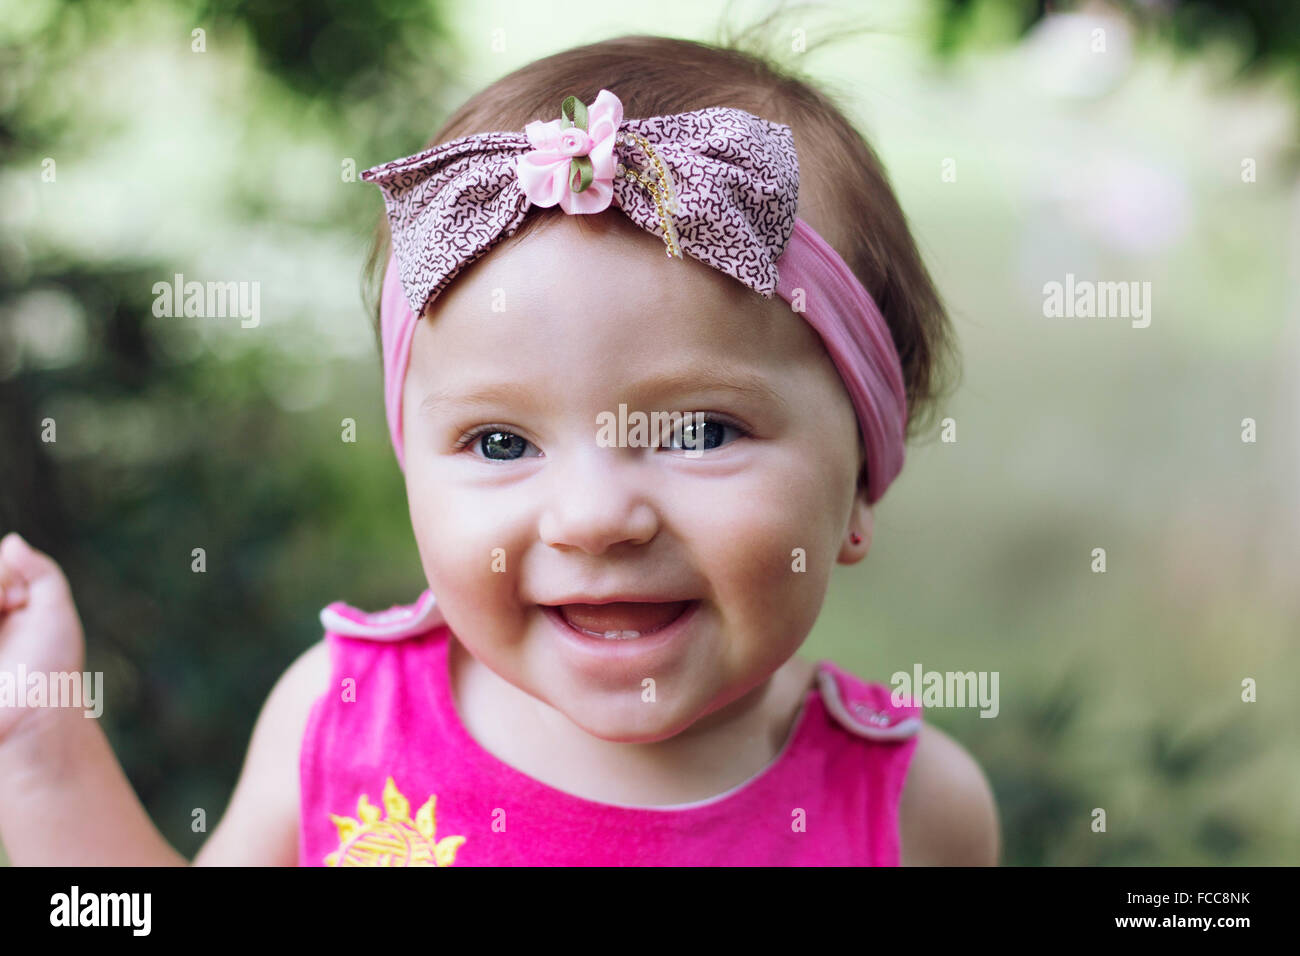 Close-Up Of A Cheerful Baby Girl Stock Photo